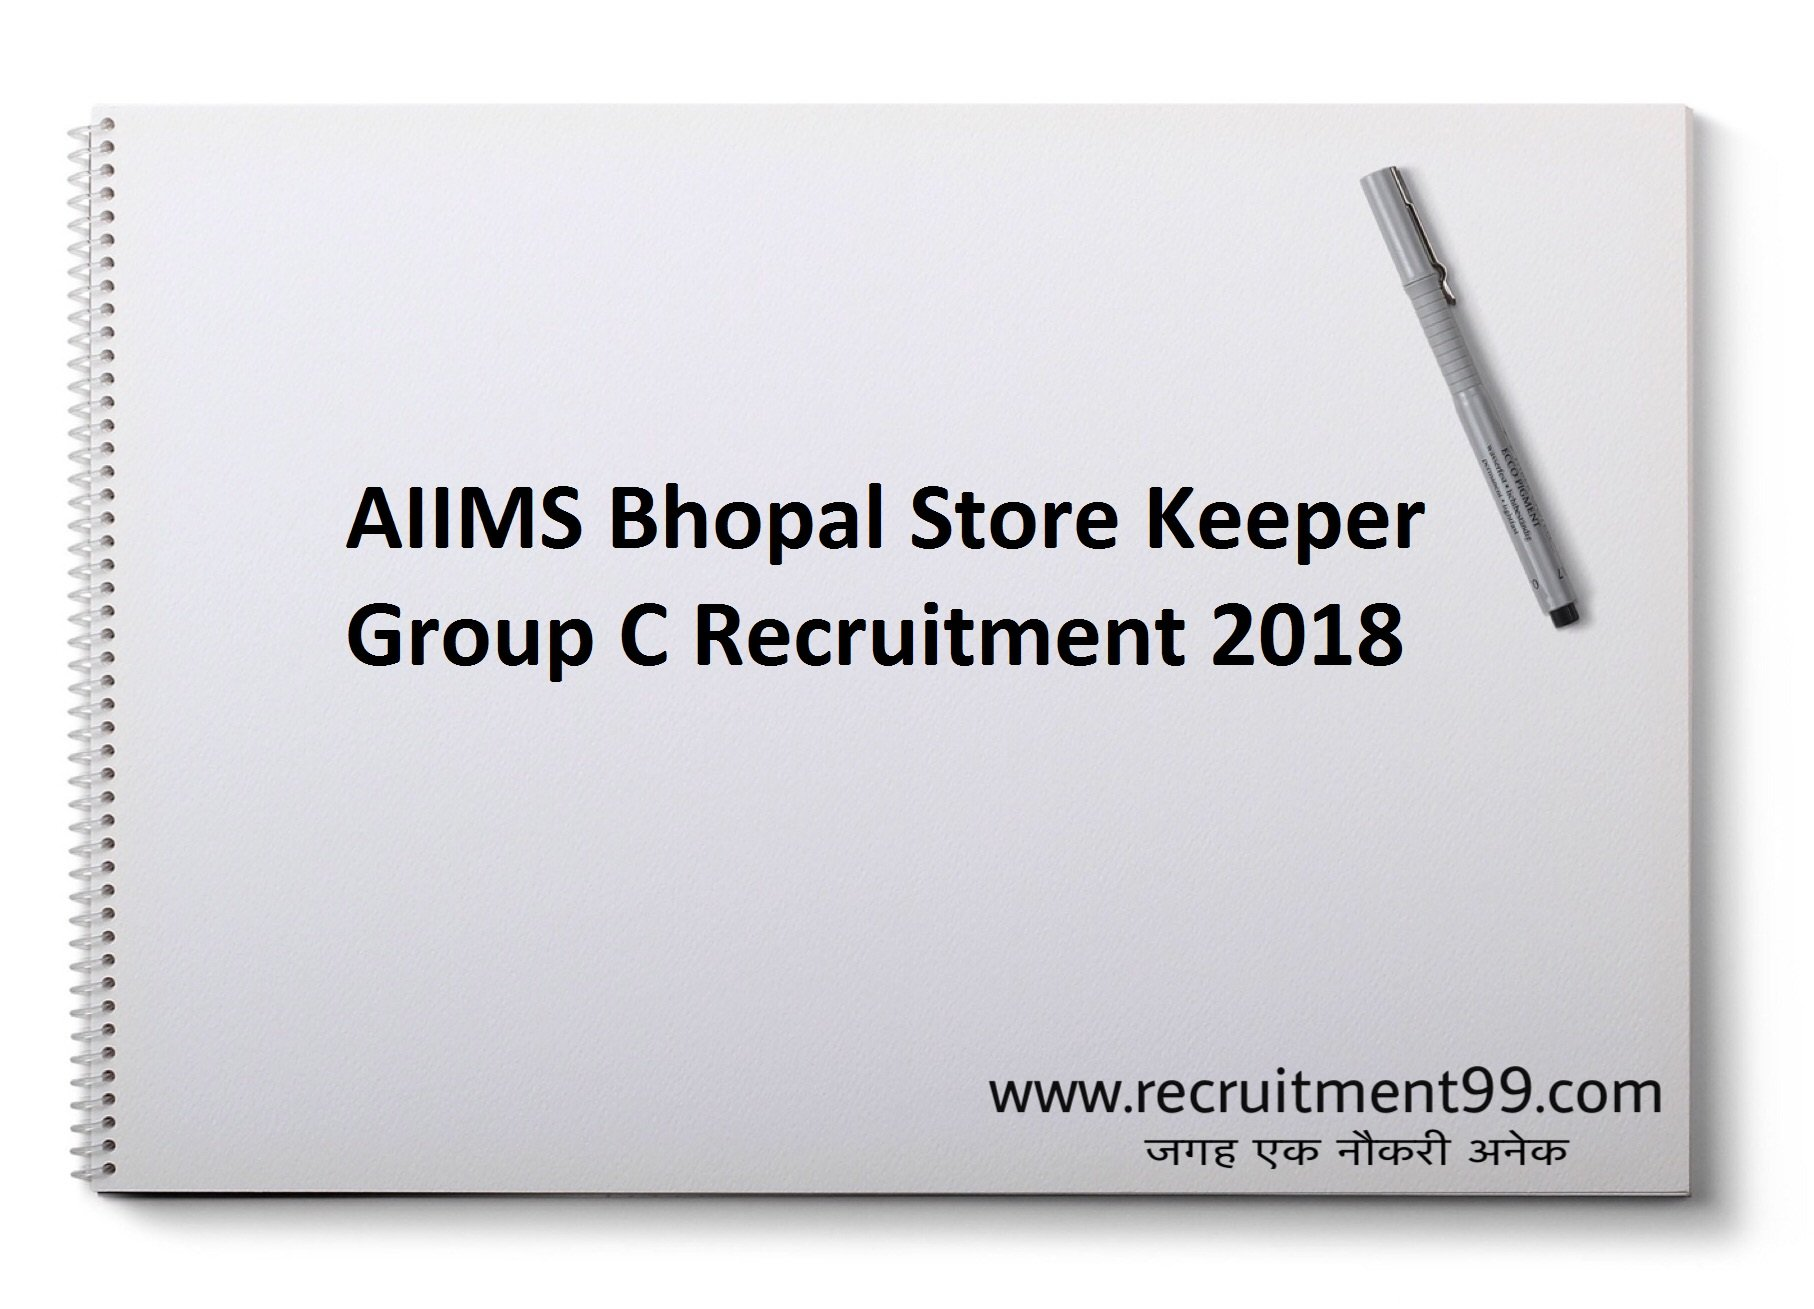 AIIMS Bhopal Store Keeper Group C Recruitment Admit Card Result 2018